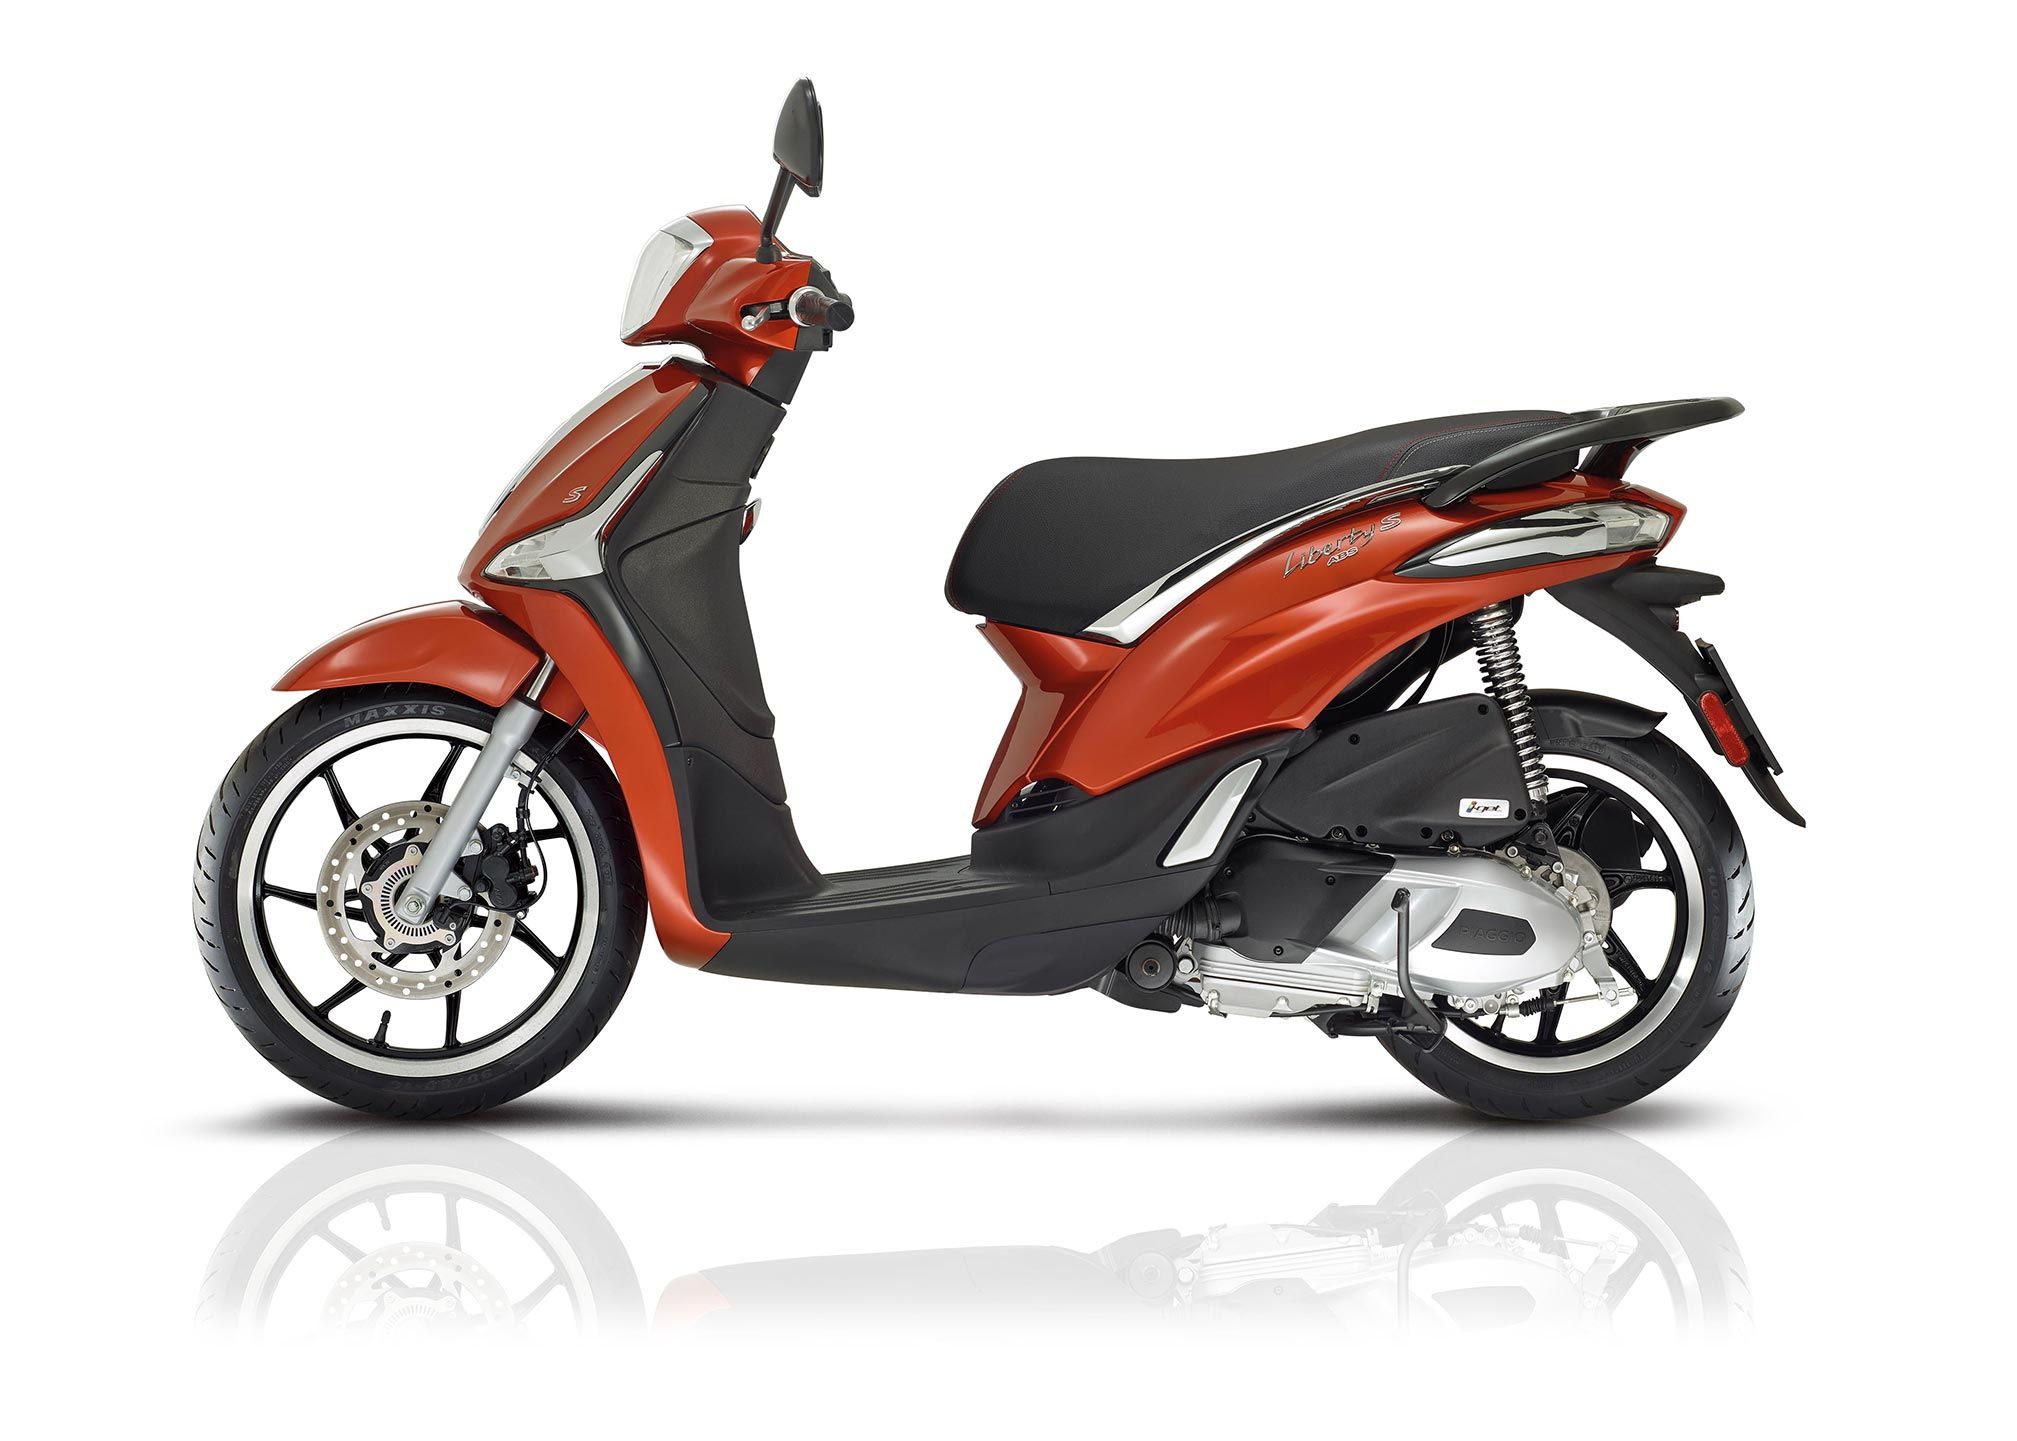 2017 Piaggio Liberty 125 Abs Iget Review